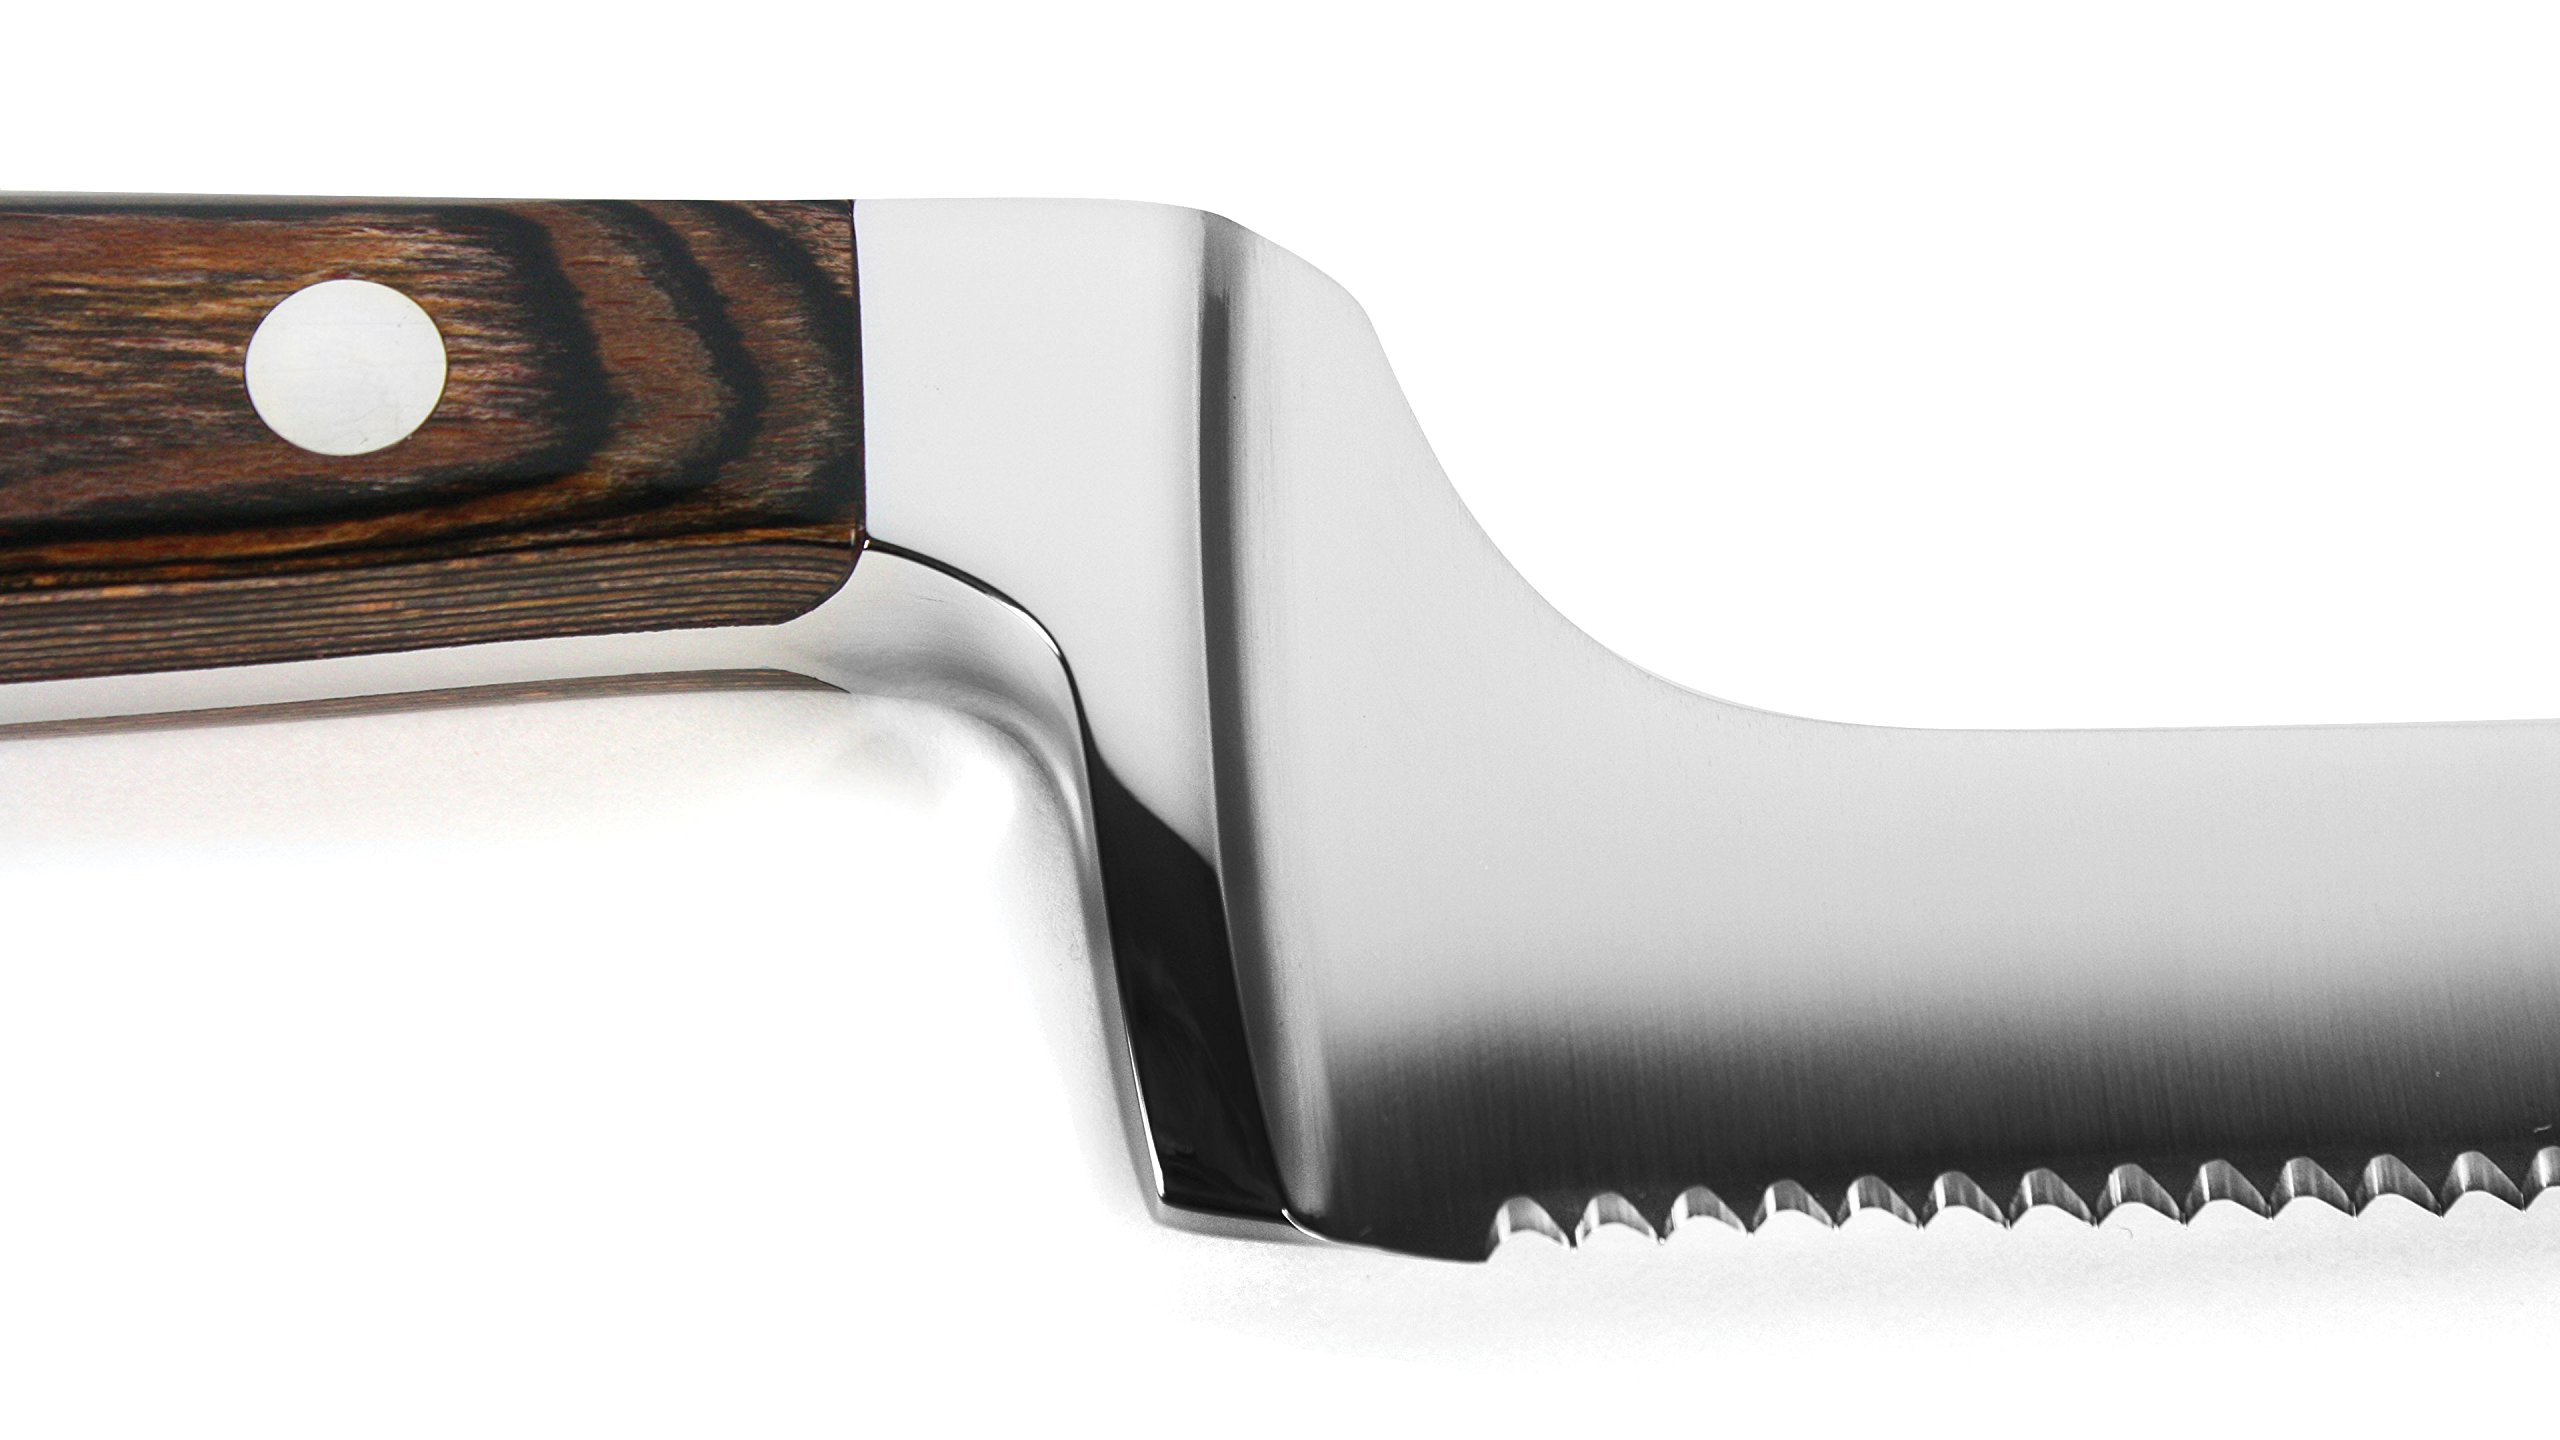 Lamson Signature Forged 9.5-inch Offset Bread Knife by Lamson (Image #3)